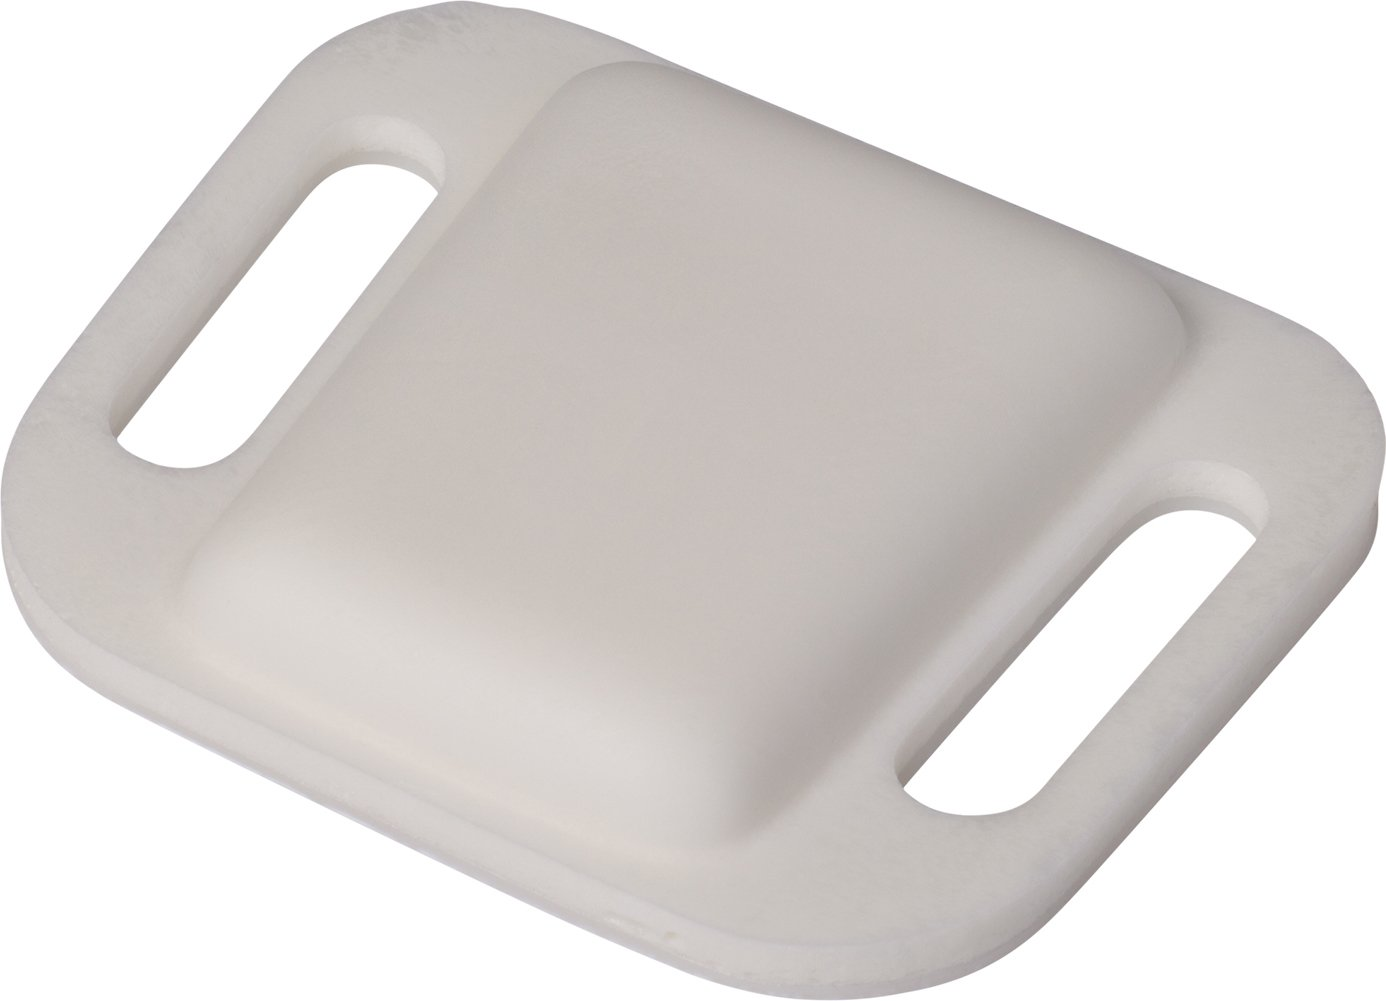 Saunders Sacroiliac (SI) Joint Support Belt Attachment: Stabilization Pad